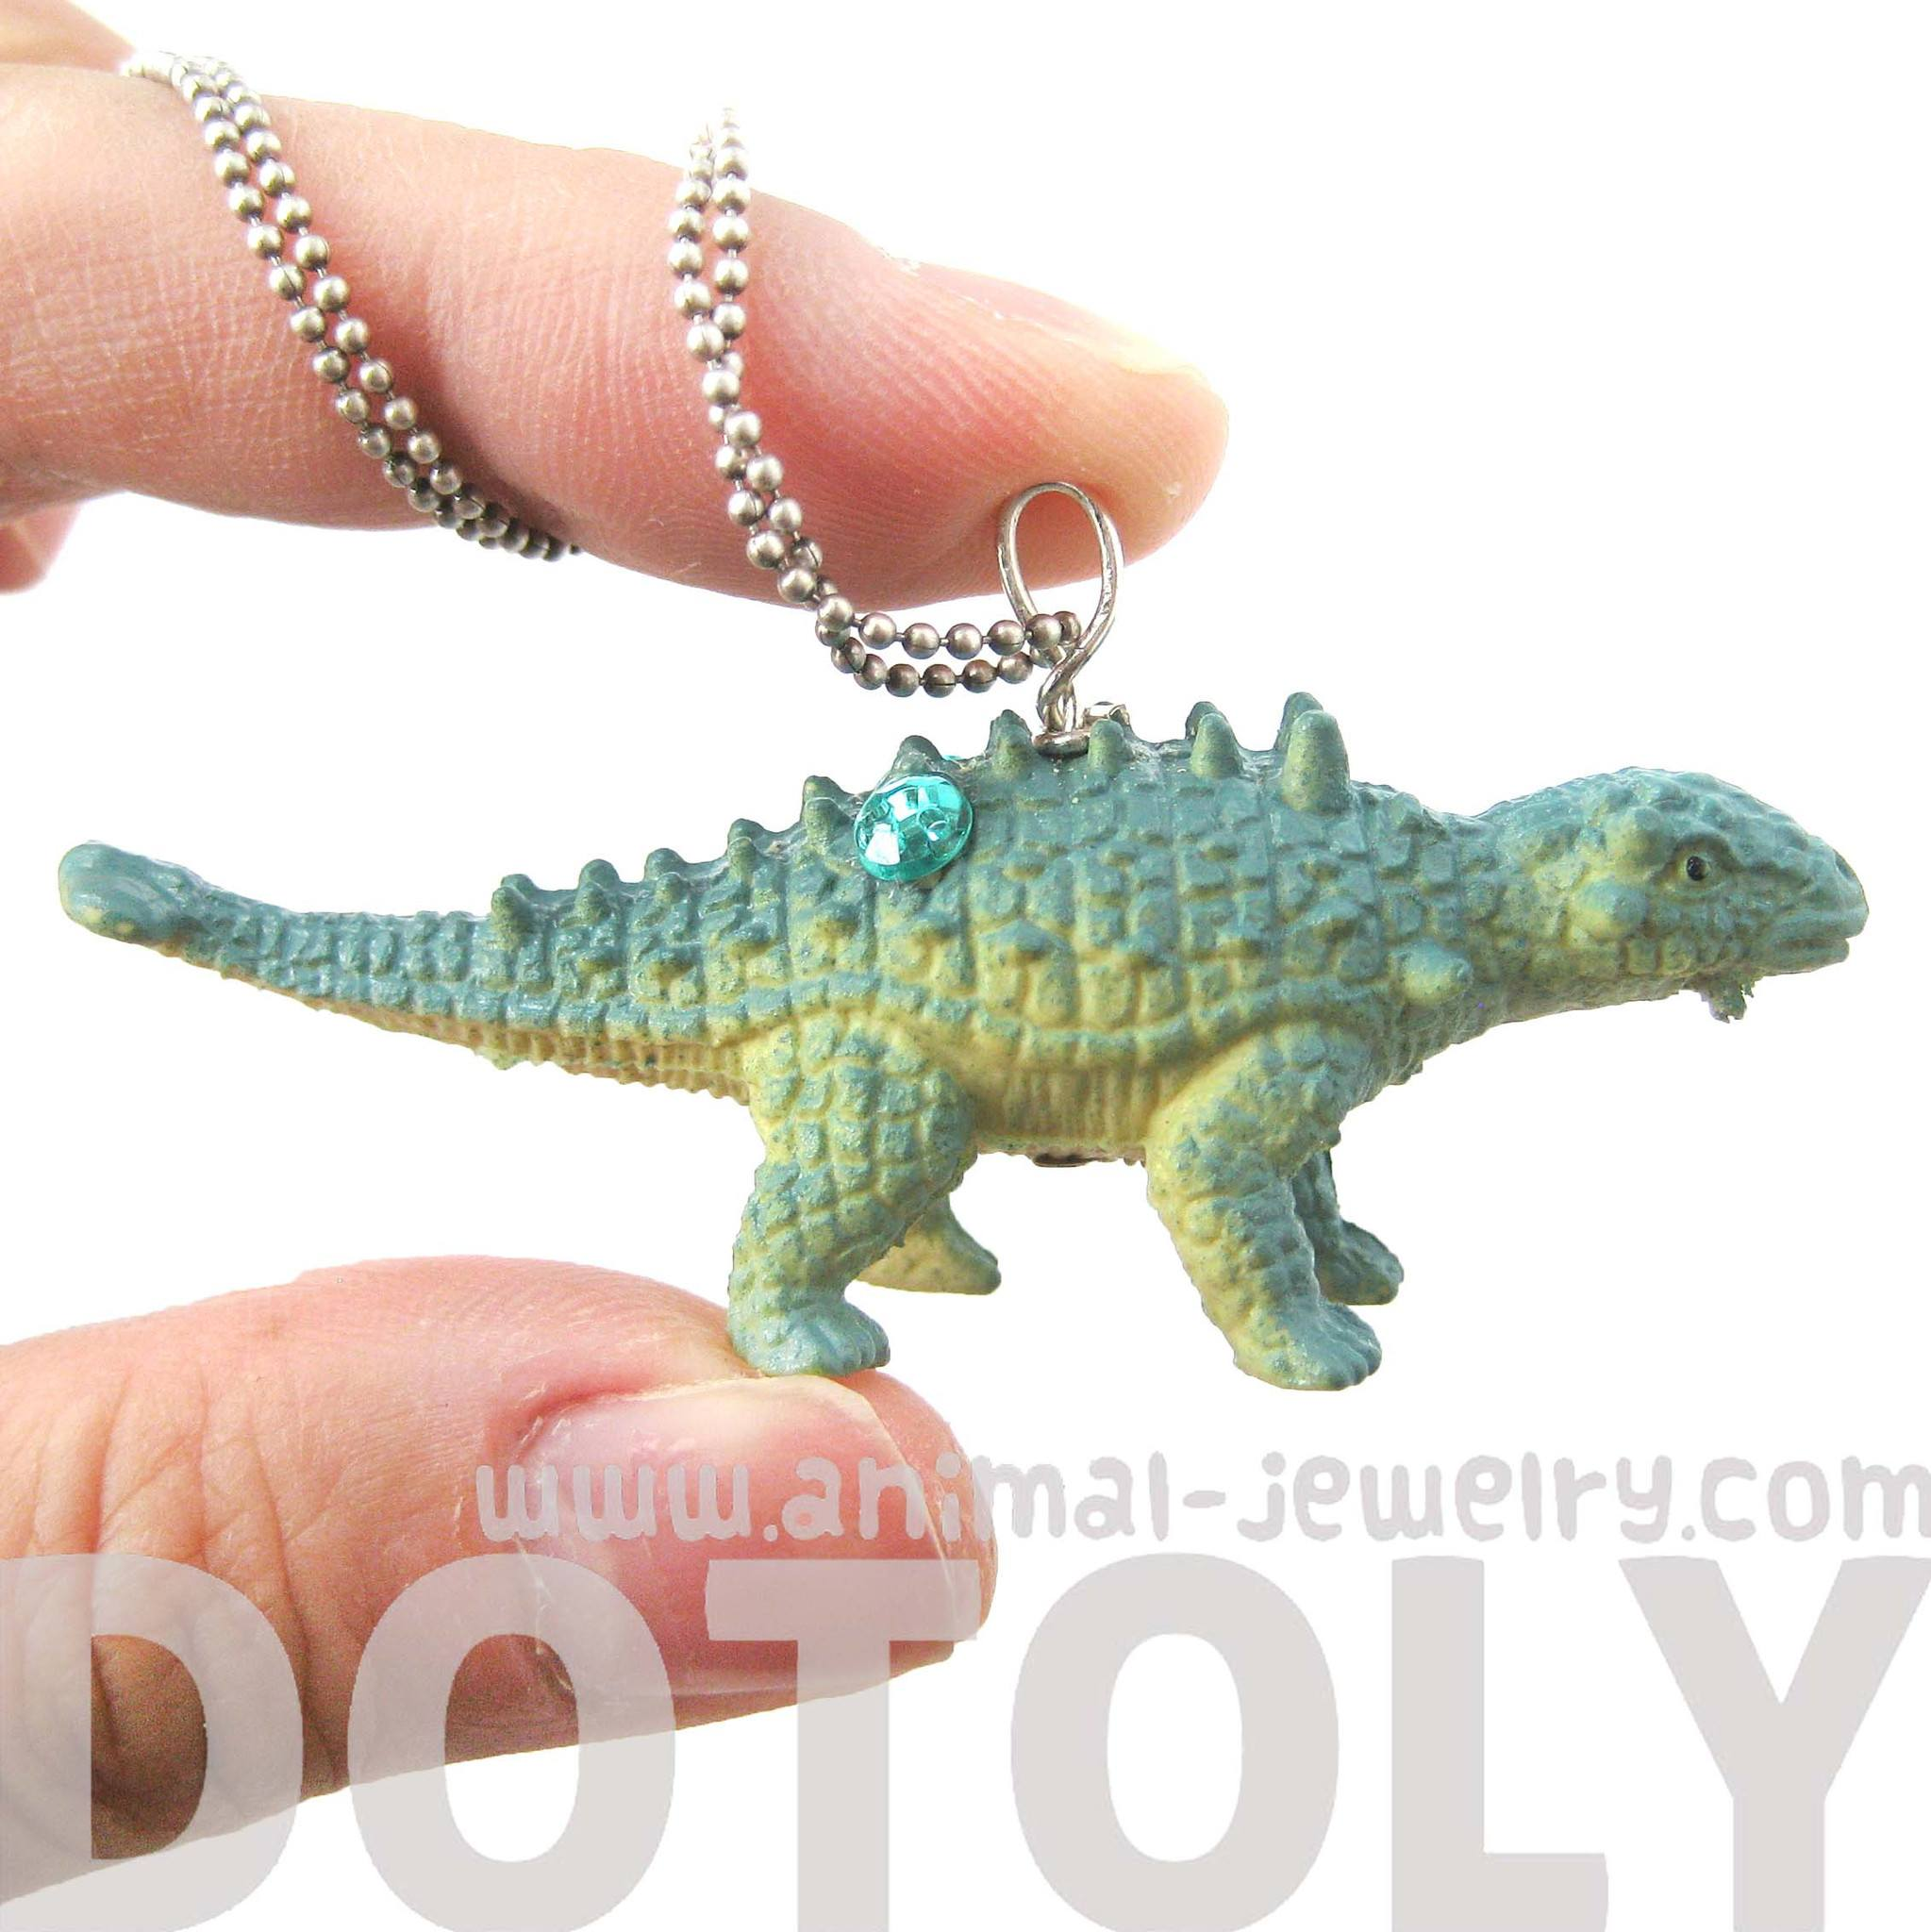 euoplocephalus-armored-dinosaur-shaped-pendant-necklace-in-blue-animal-jewelry